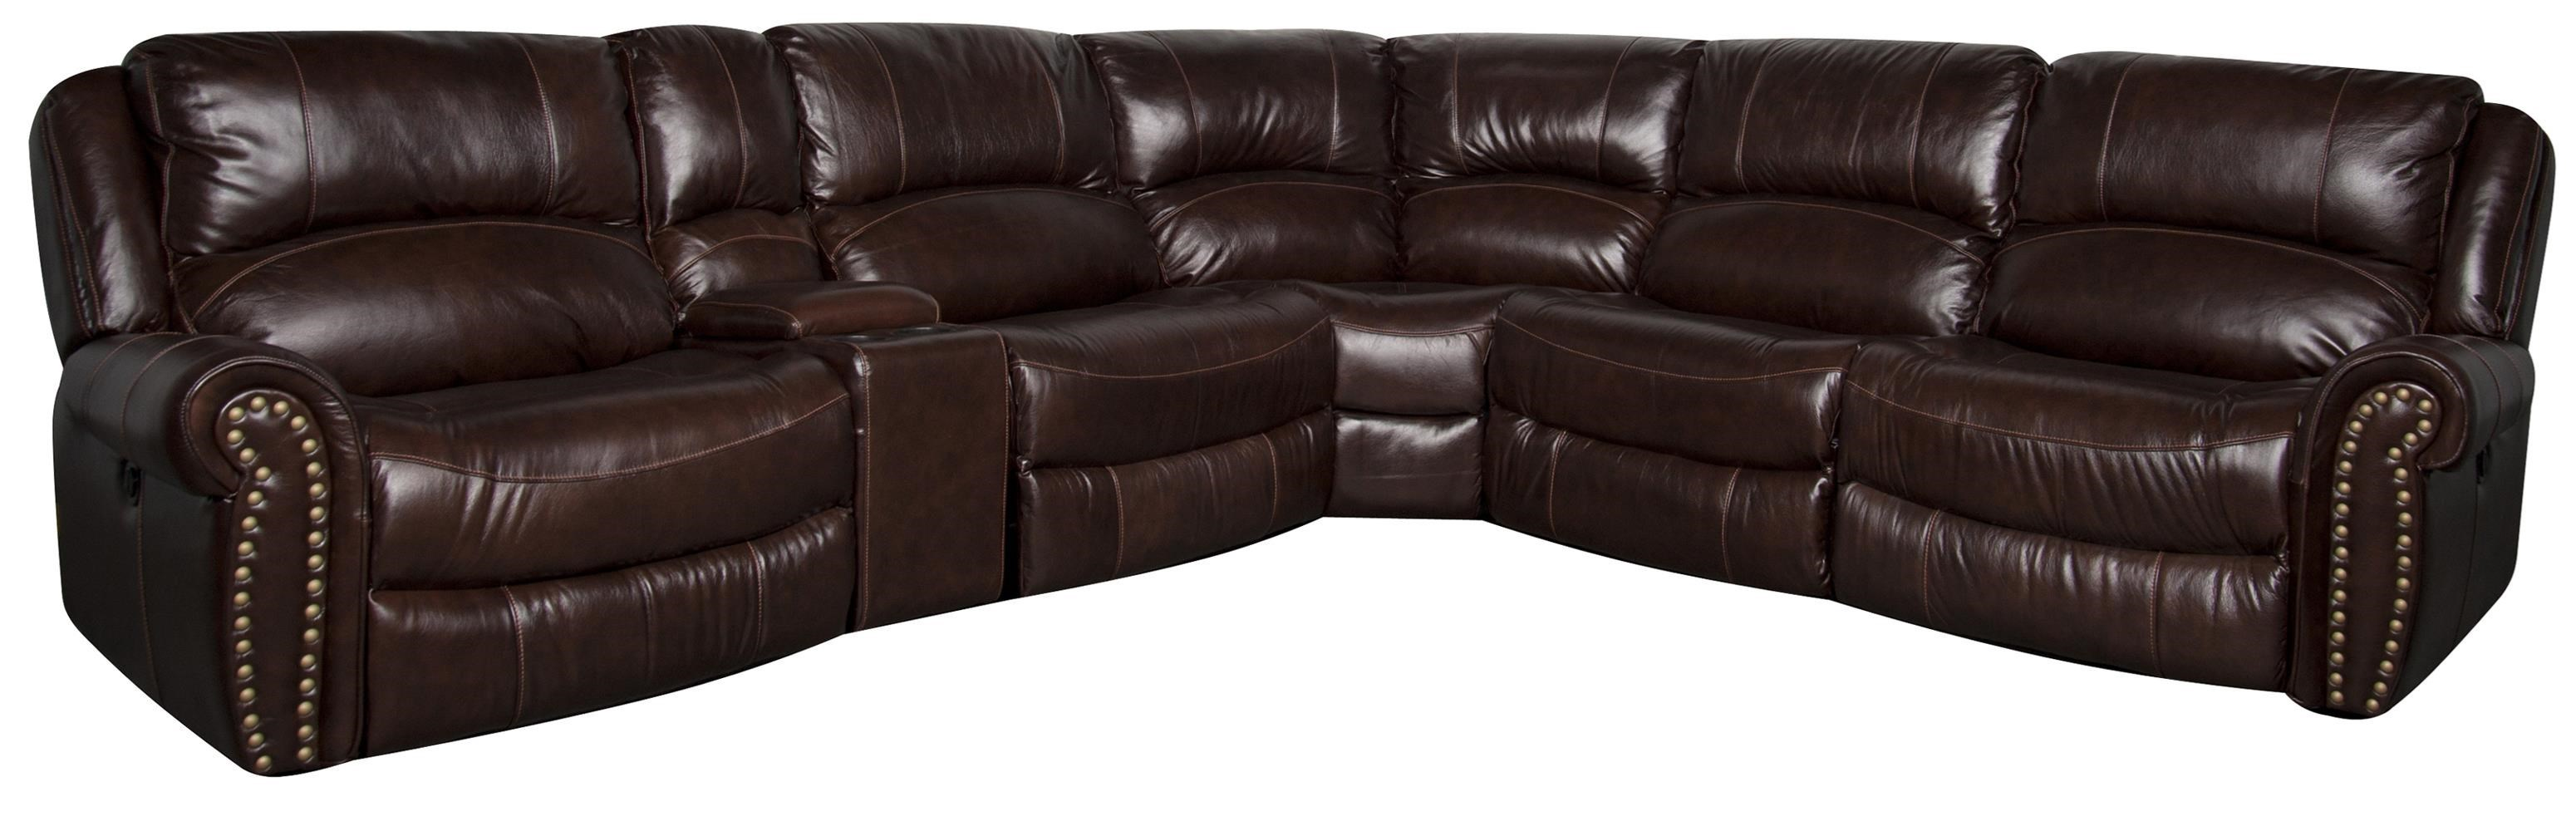 Morris Home FlemingFleming Leather Match* PWR Sectional ...